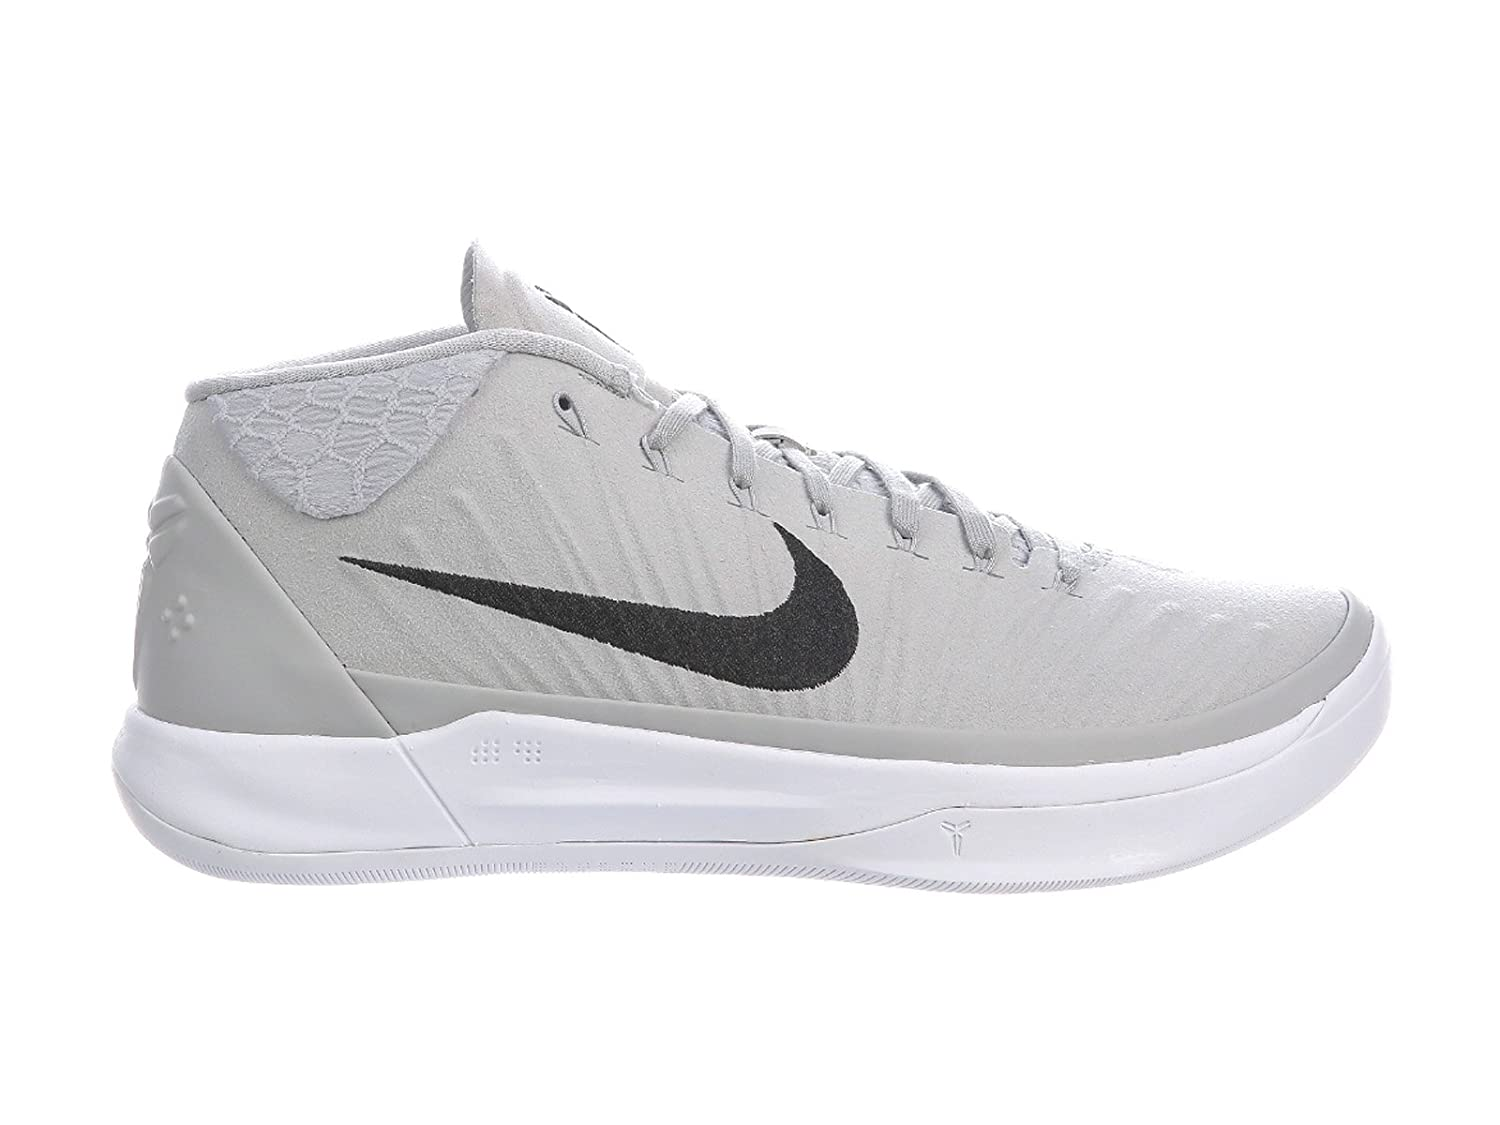 NIKE Men's Kobe A.D. Nylon Basketball Shoes B00D3RGXFS 14 D(M) US|Wolf Grey/Black/White